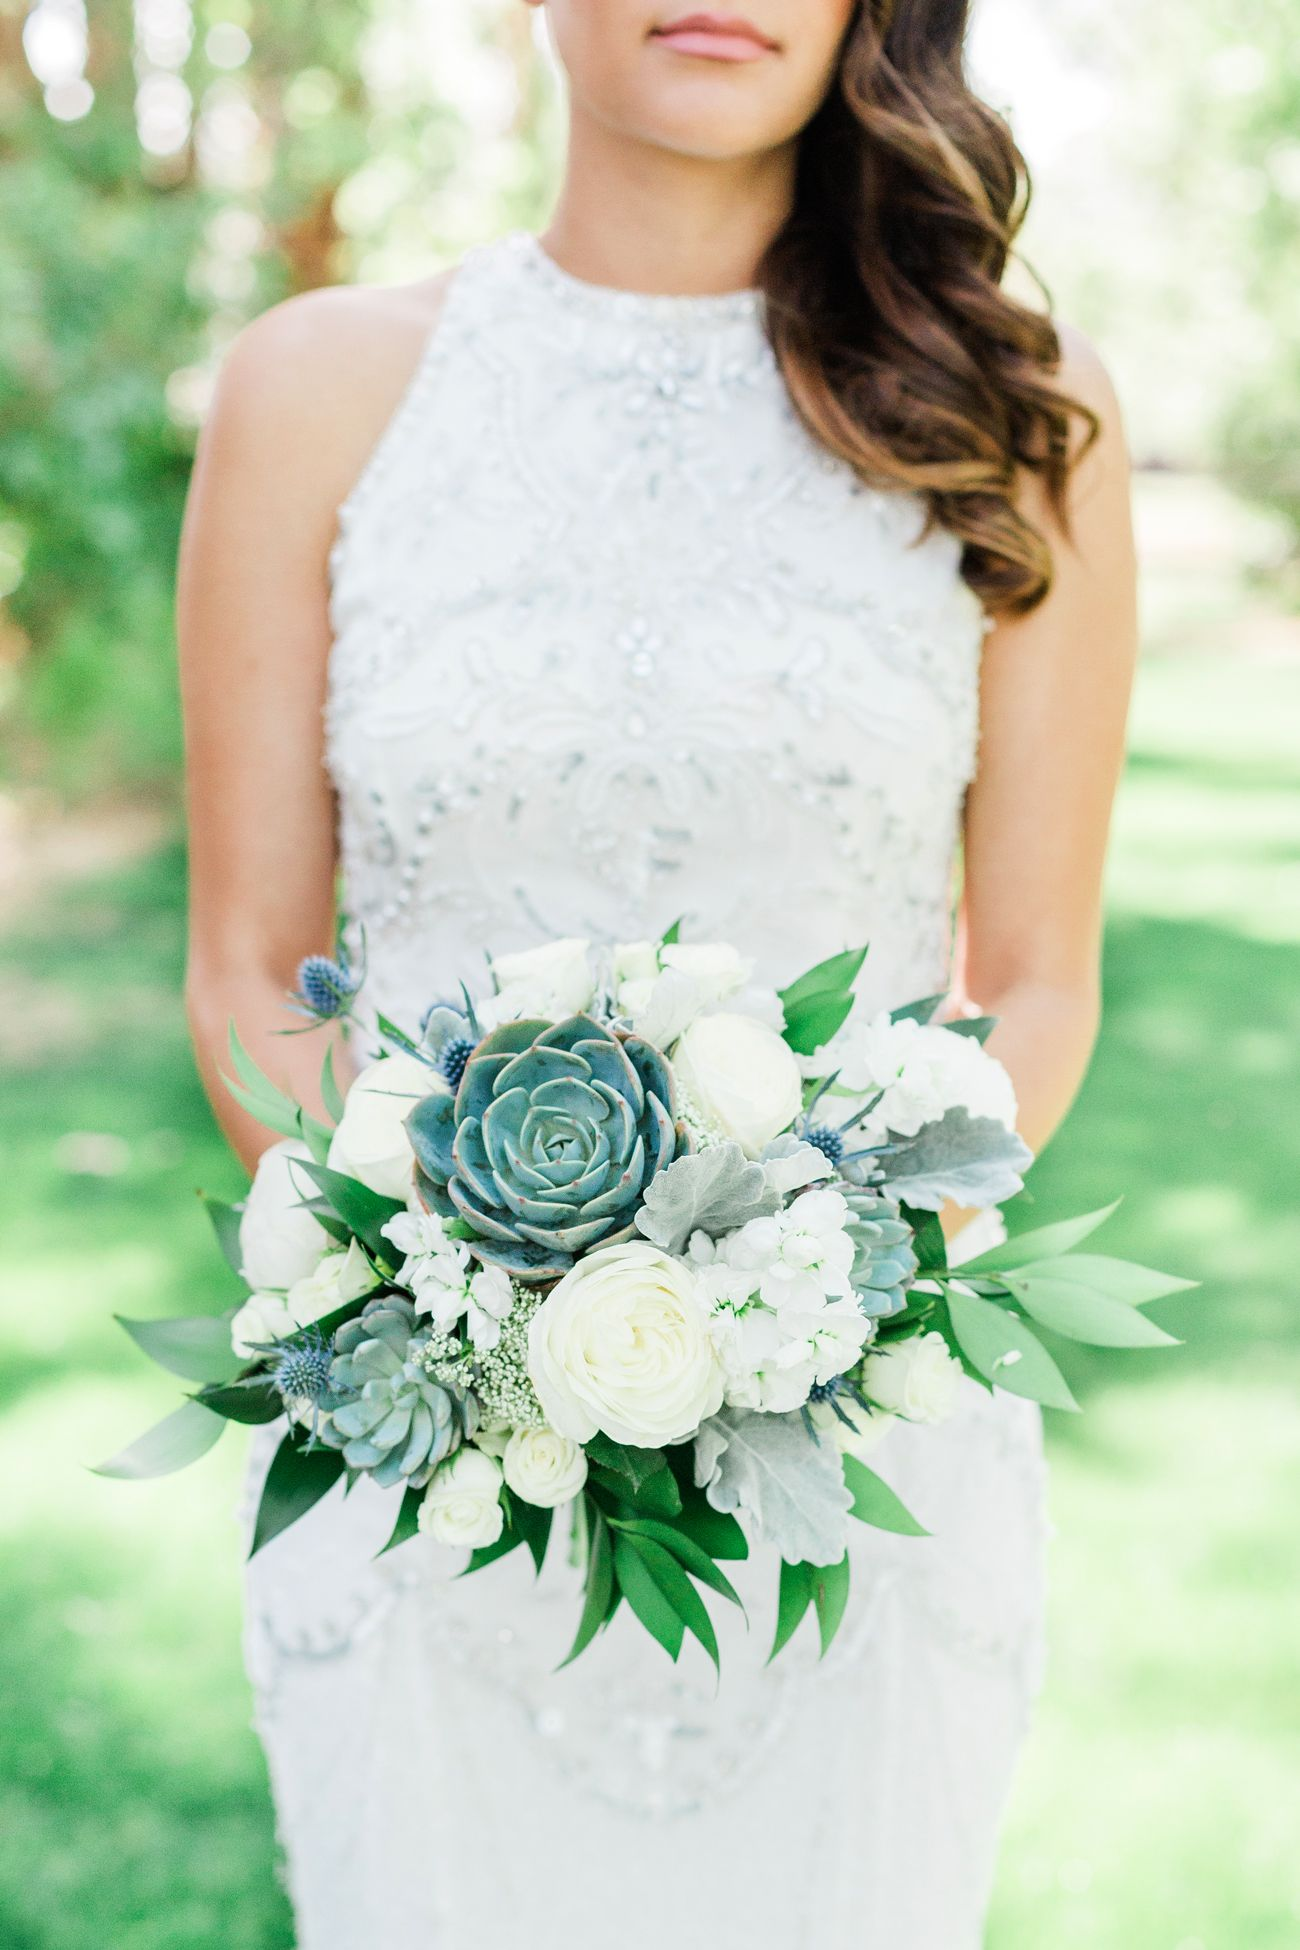 Use Succulents as Part of Your Wedding Bouquets